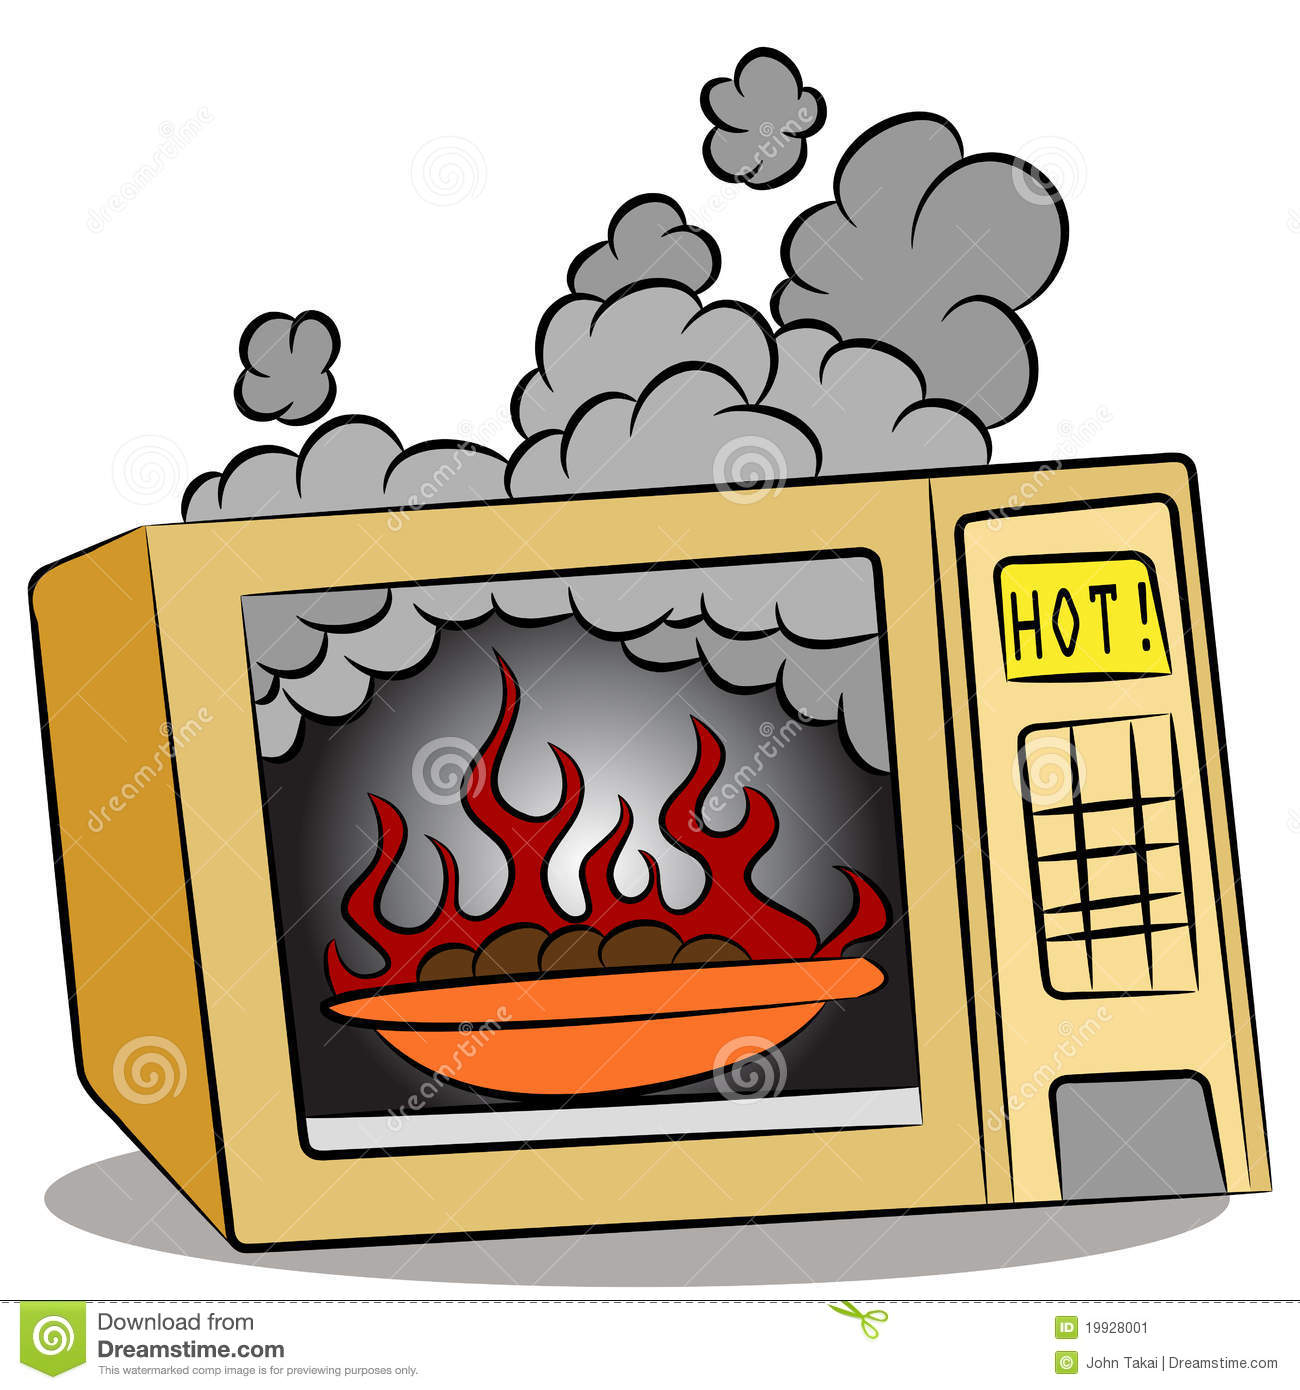 Dirty Microwave Clip Art Food burning in microwave oven